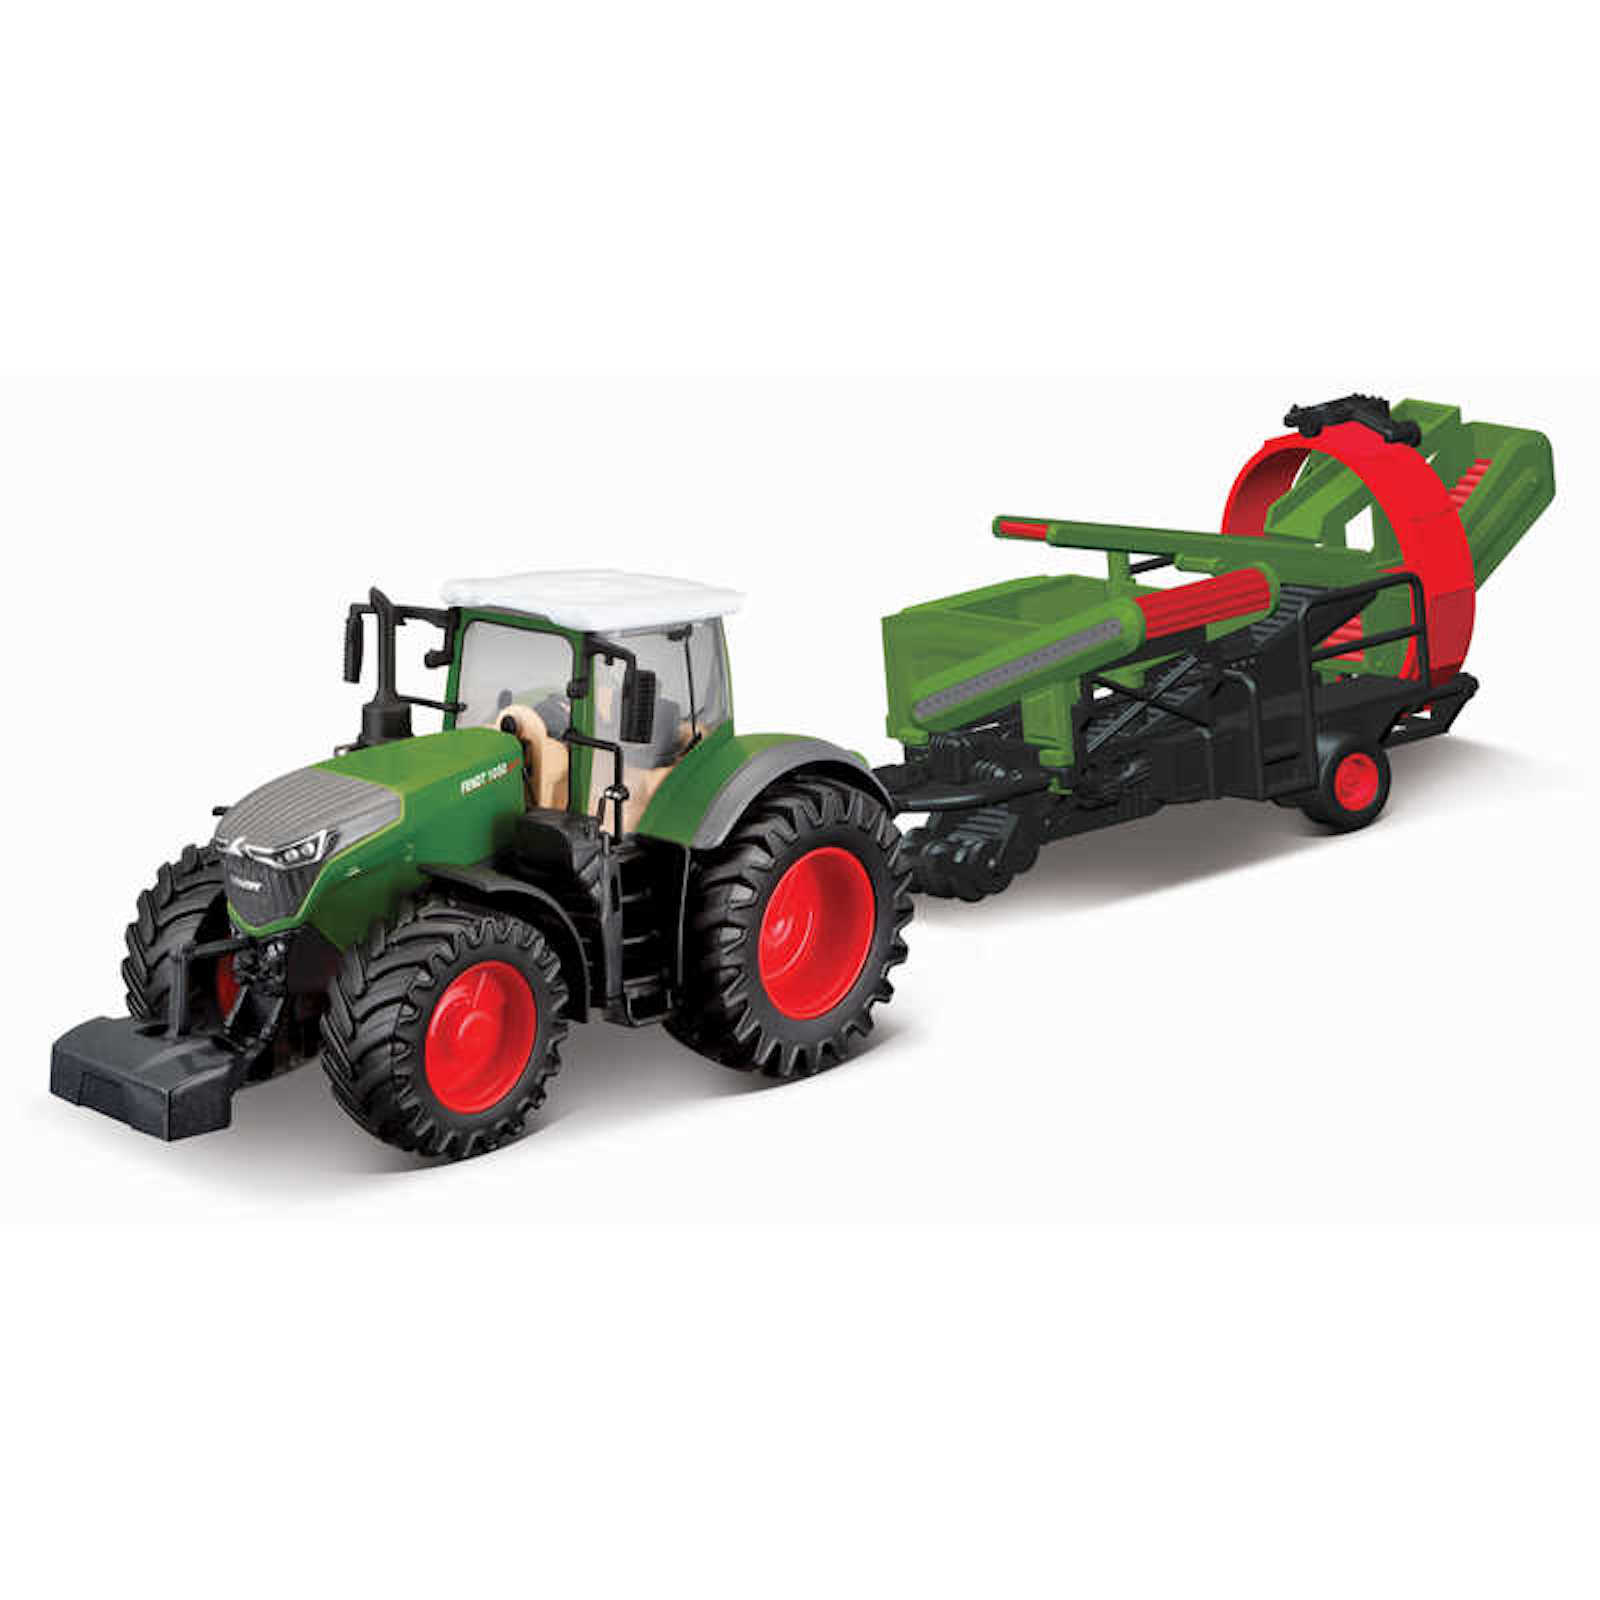 Fendt 1050 Vario Tractor With Cultivator Model Toy Childs Kids Dads Birthday Collectors Gift